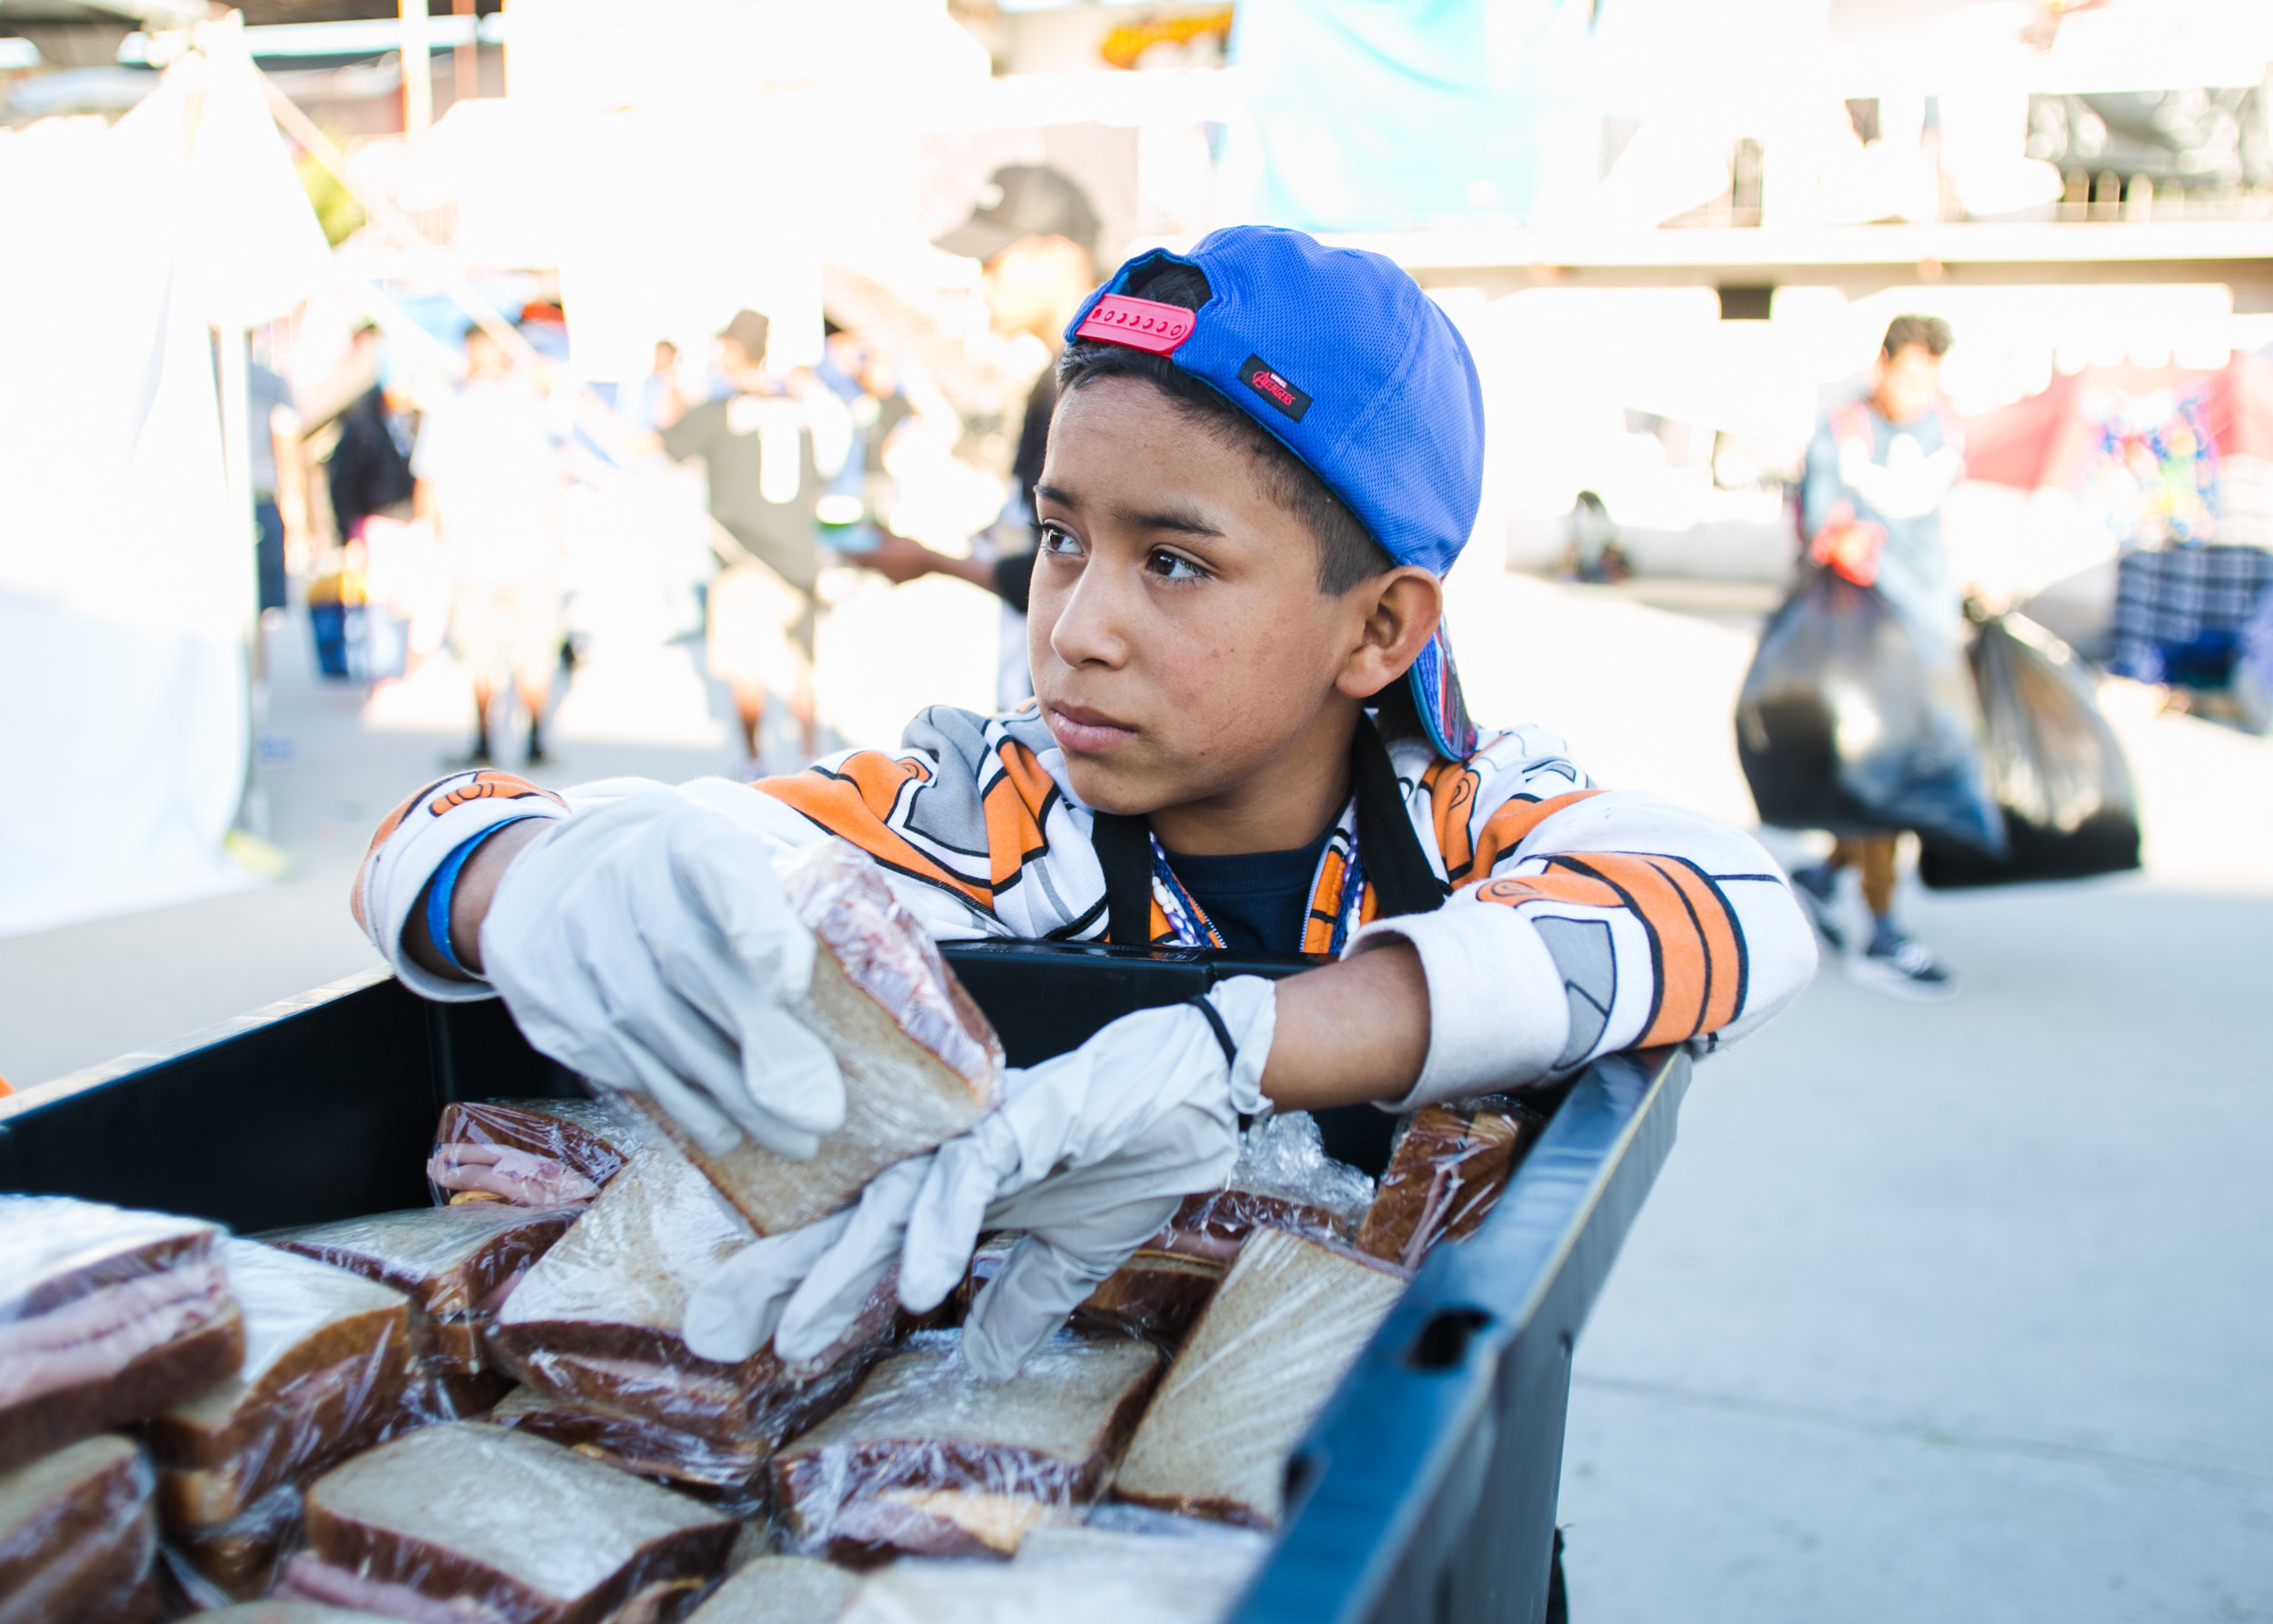 A Honduran refugee gives out sandwiches prepared by World Central Kitchen in the Barretal refugee camp located just outside of Tijuana, Mexico.